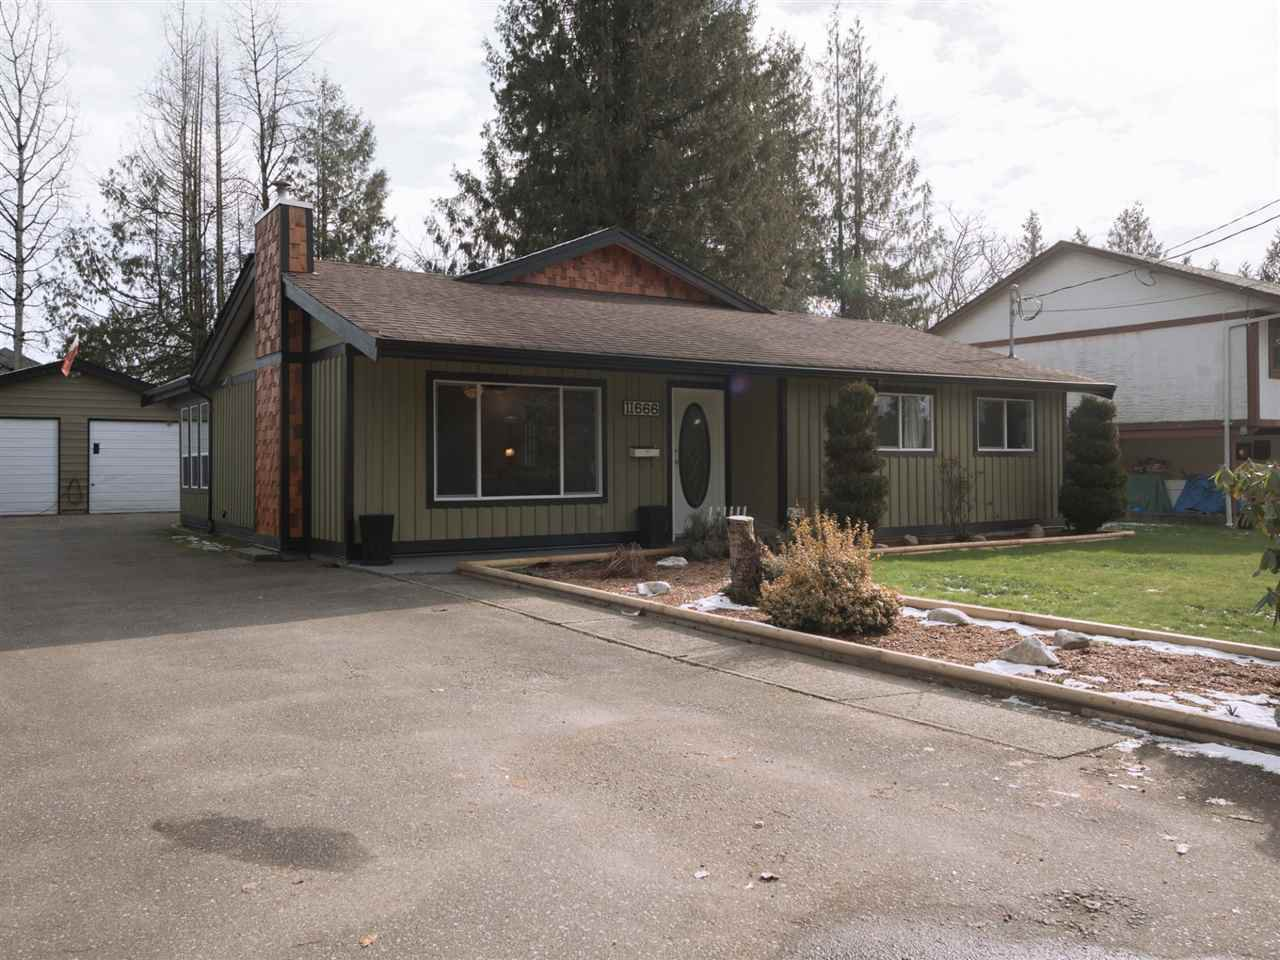 Main Photo: 11666 ADAIR Street in Maple Ridge: East Central House for sale : MLS®# R2241800